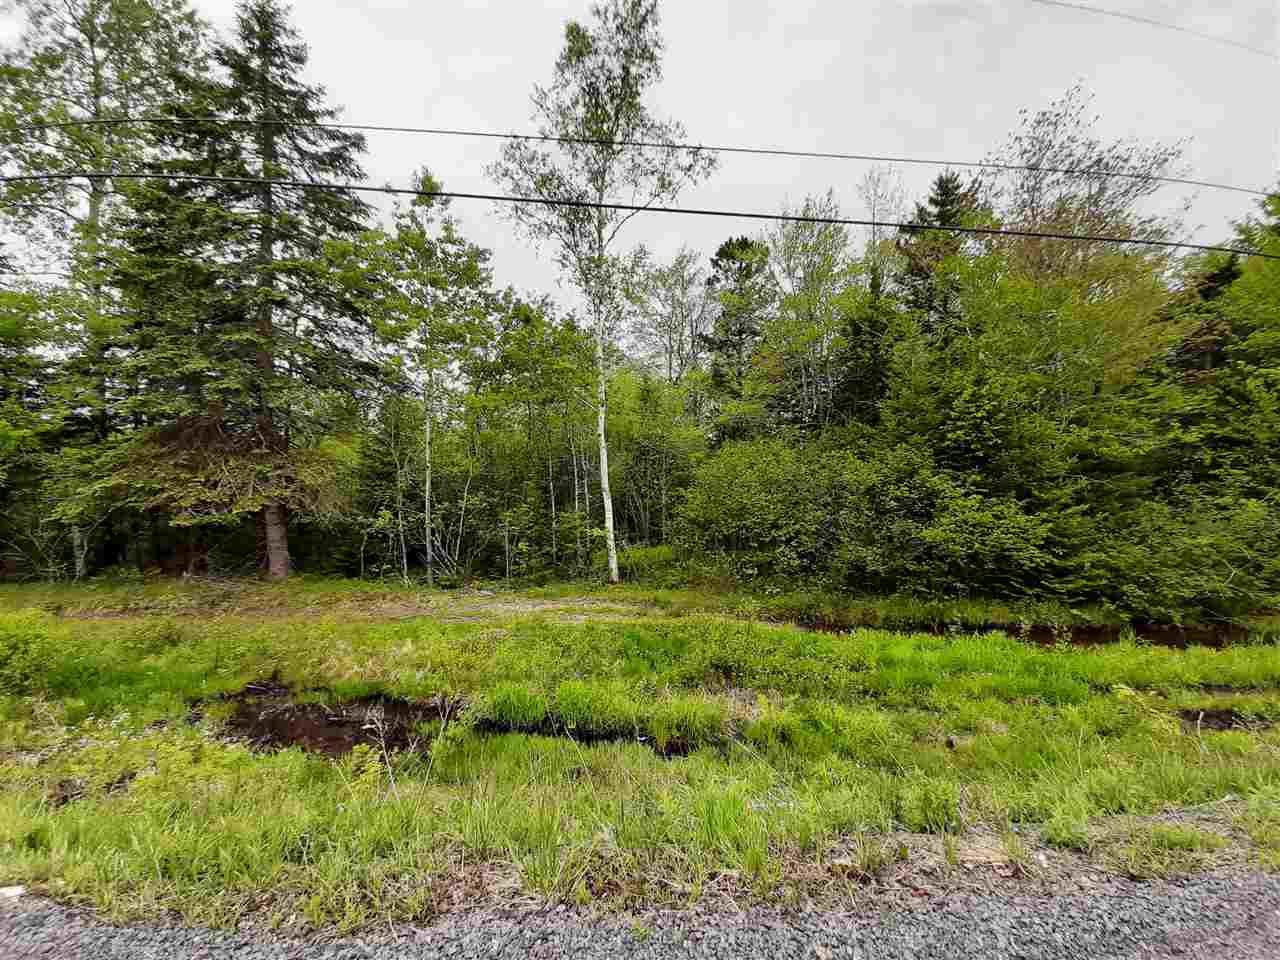 Main Photo: Lot A1 Aylesford Road in Lake Paul: 404-Kings County Vacant Land for sale (Annapolis Valley)  : MLS®# 202009528